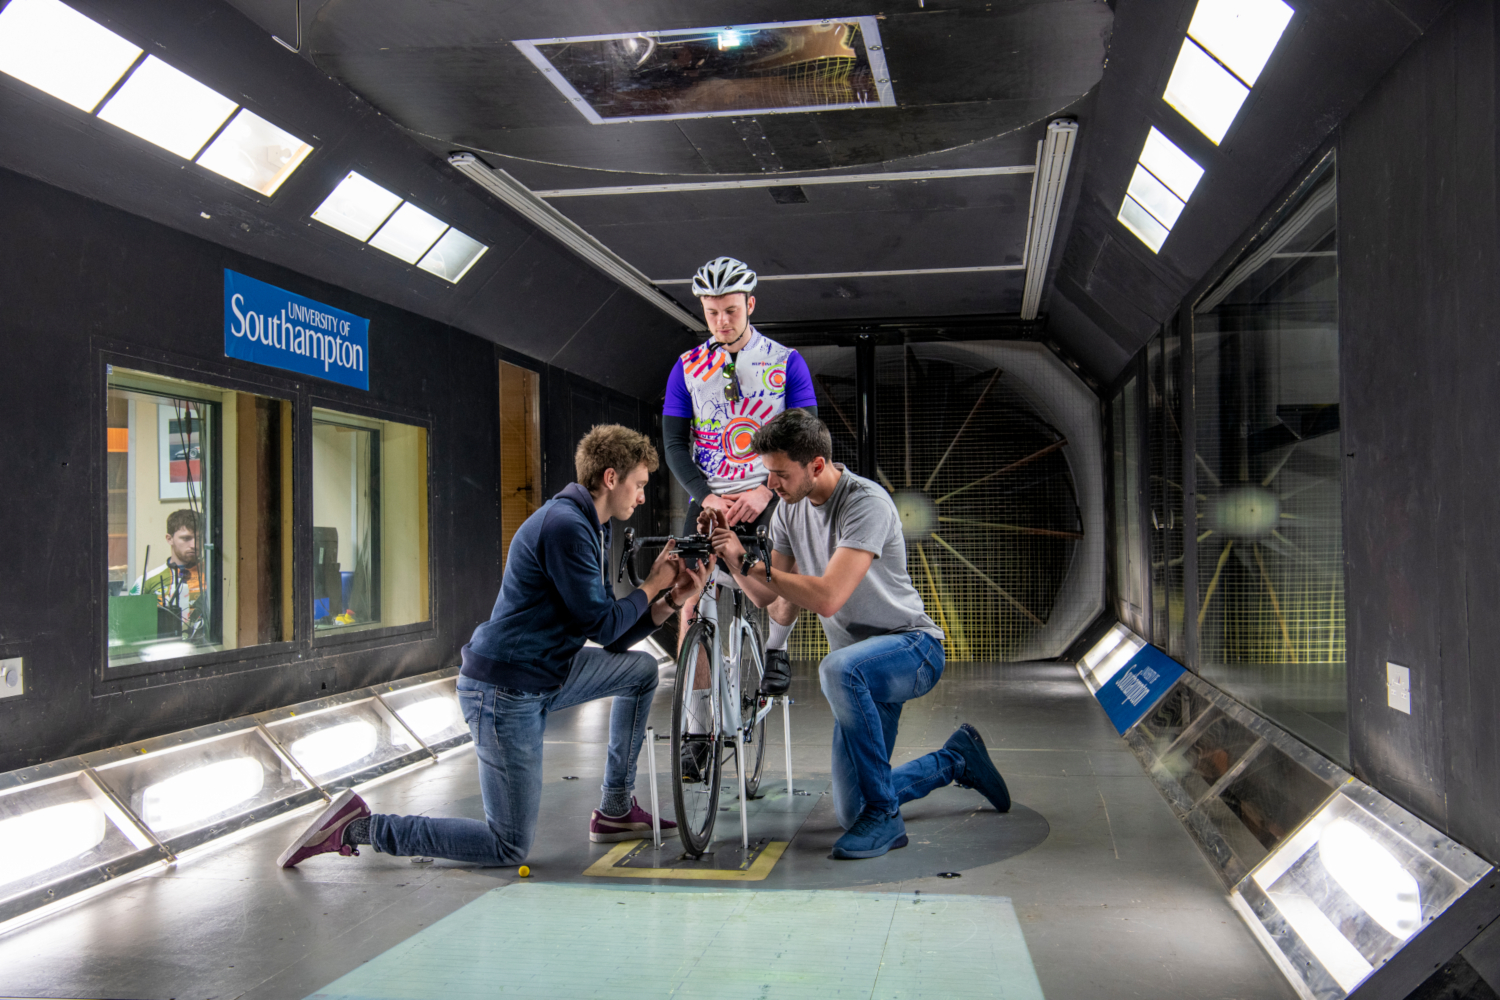 Engineers test bike in wind tunnel. Investigating the relationship between a rider's cycling position and aerodynamic performance in the University of Southampton's R.J. Mitchell Wind Tunnel. (credits: © University of Southampton. Aerospace Engineering. / Flickr Creative Commons Attribution-NonCommercial-NoDerivs 2.0 Generic (CC BY-NC-ND 2.0))